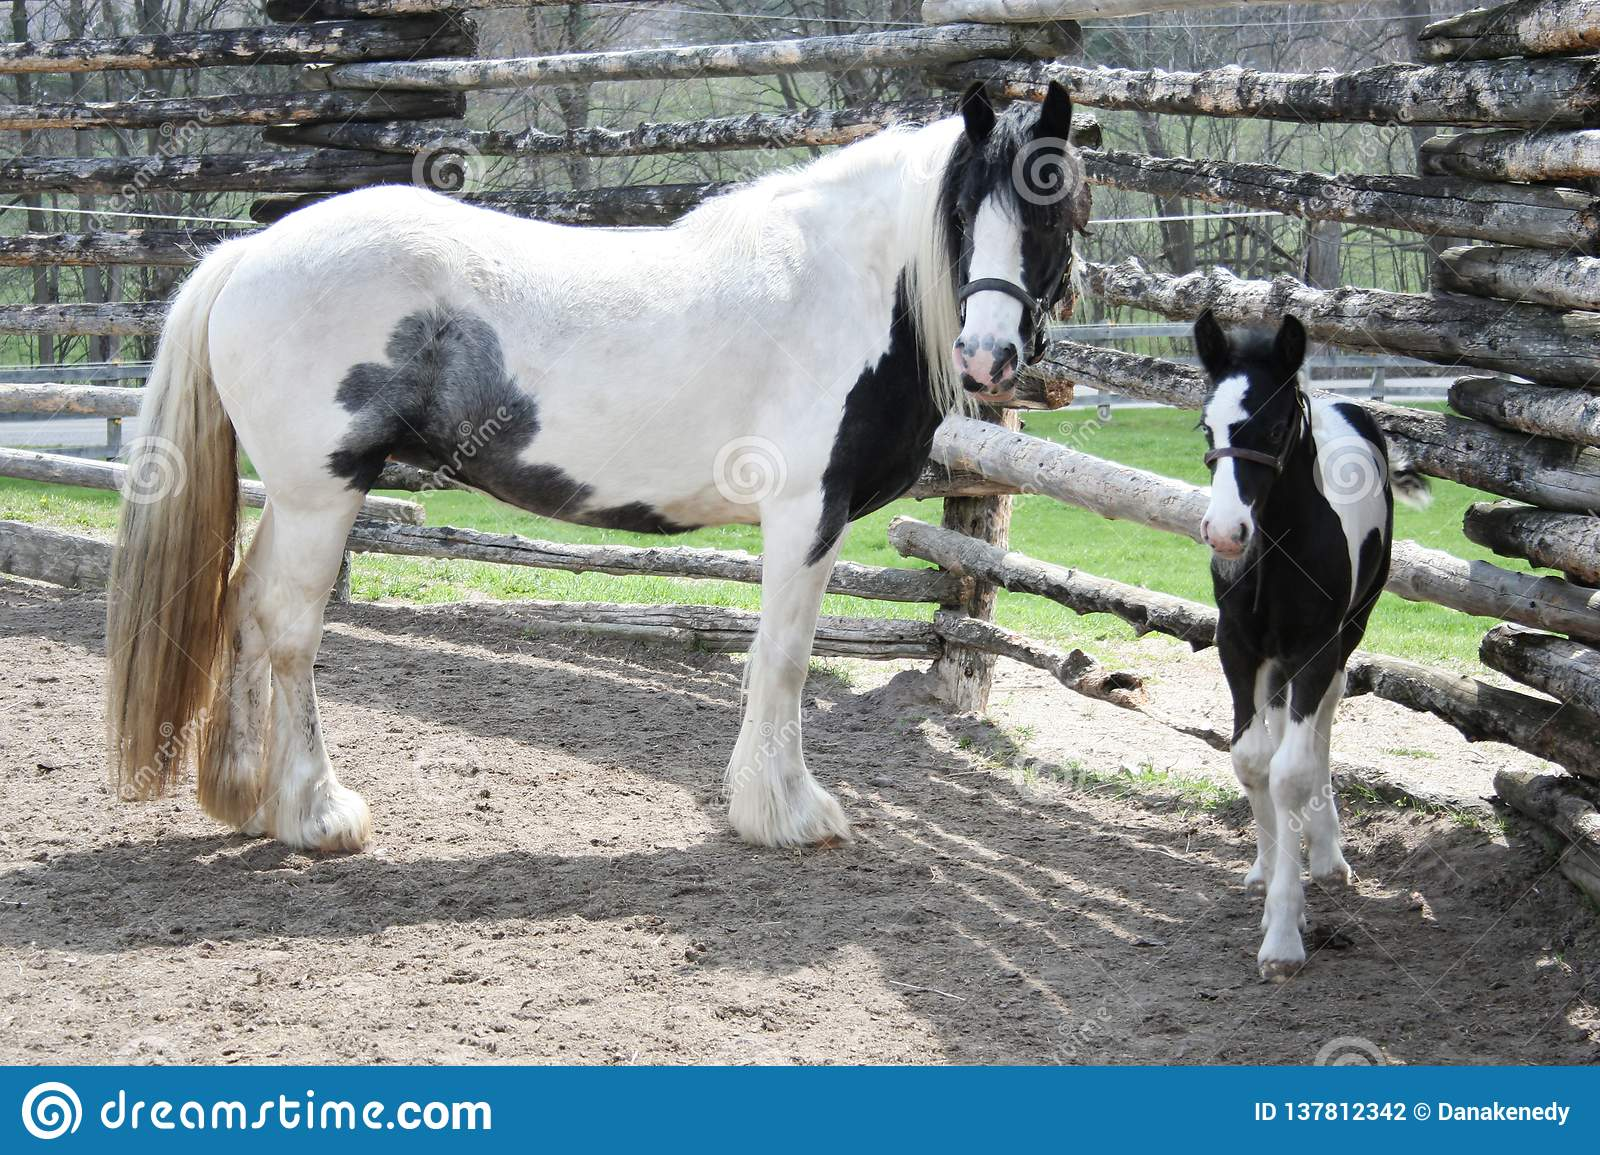 Cute Black And White Foal And Momma Horse Stock Photo Image Of Horses Baby 137812342